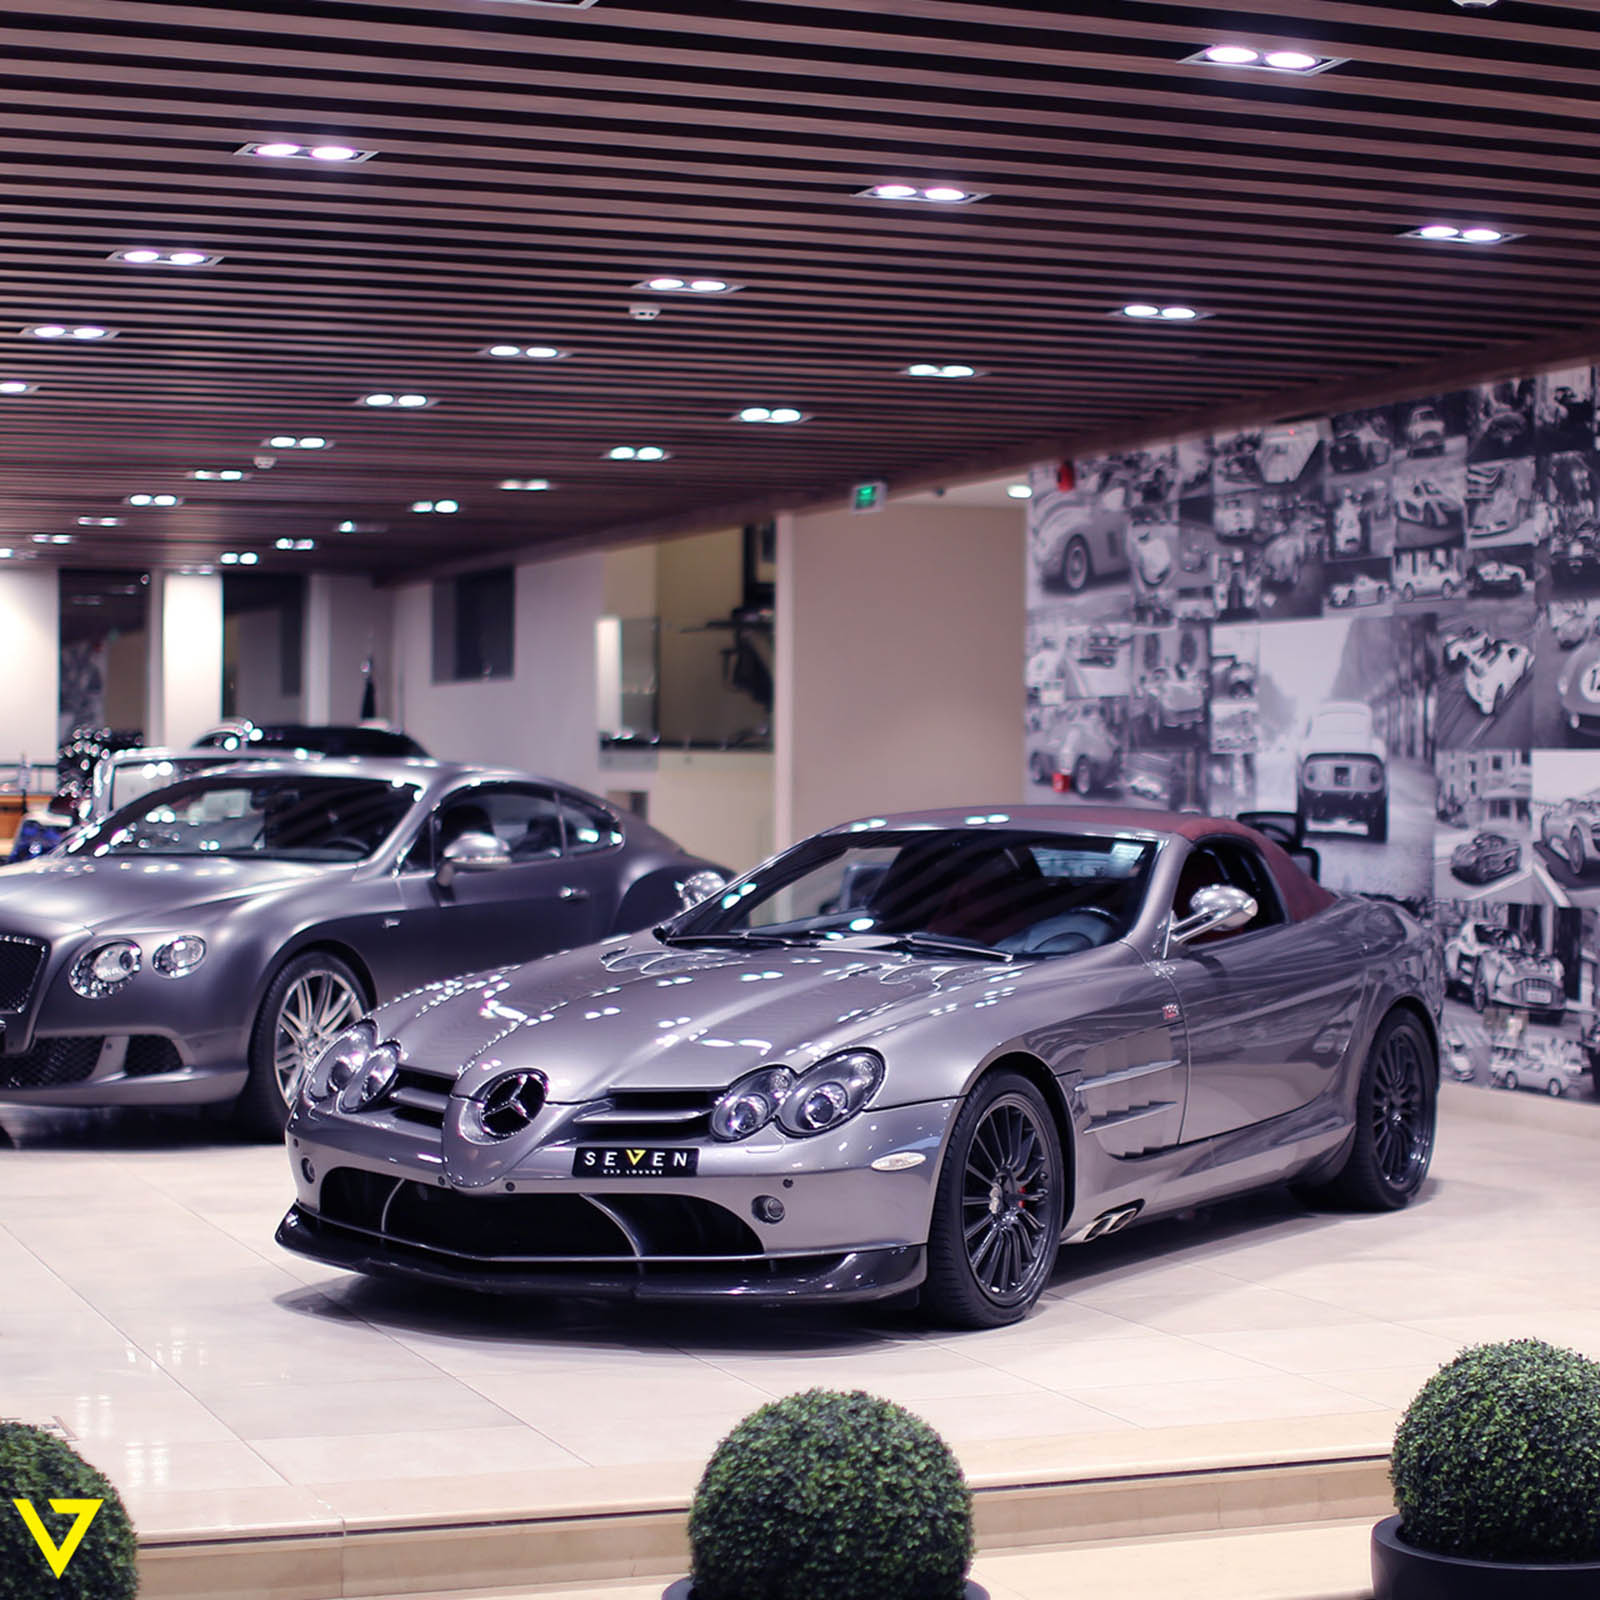 rare mercedes benz slr mclaren roadster 722 s could be yours for 745 000 autoevolution. Black Bedroom Furniture Sets. Home Design Ideas